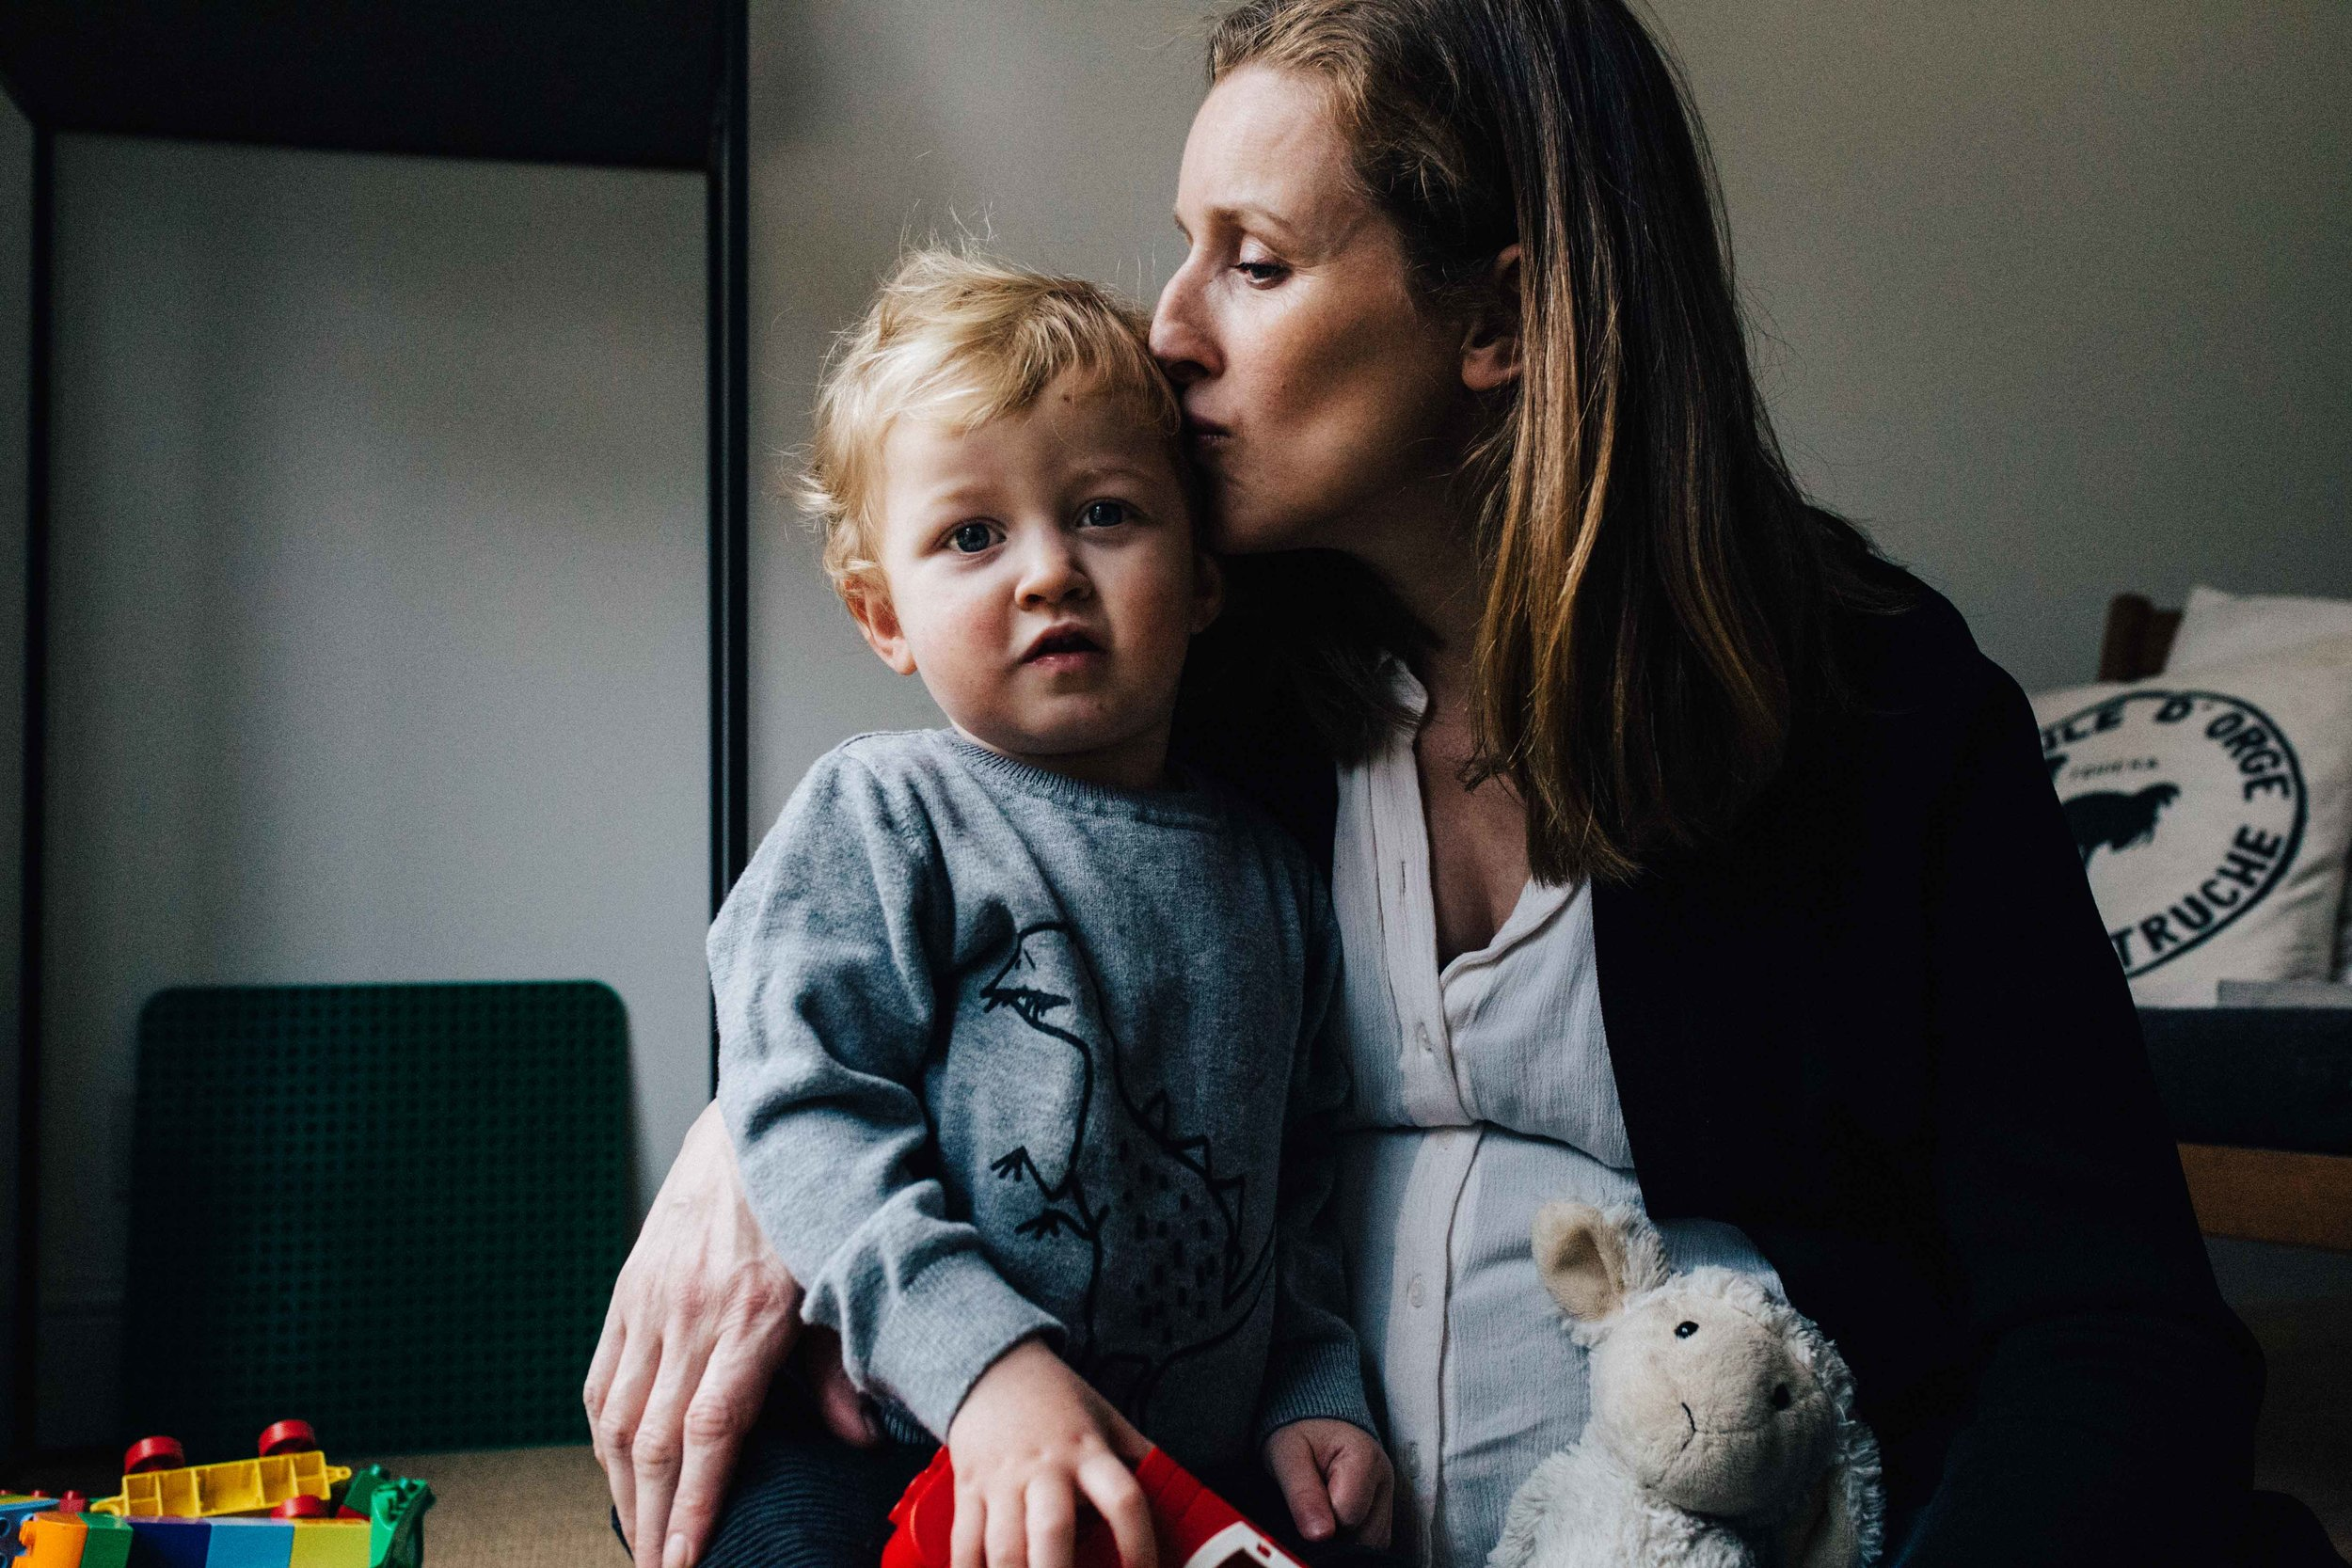 London family photographer - mother and son hugging during family photoshoot